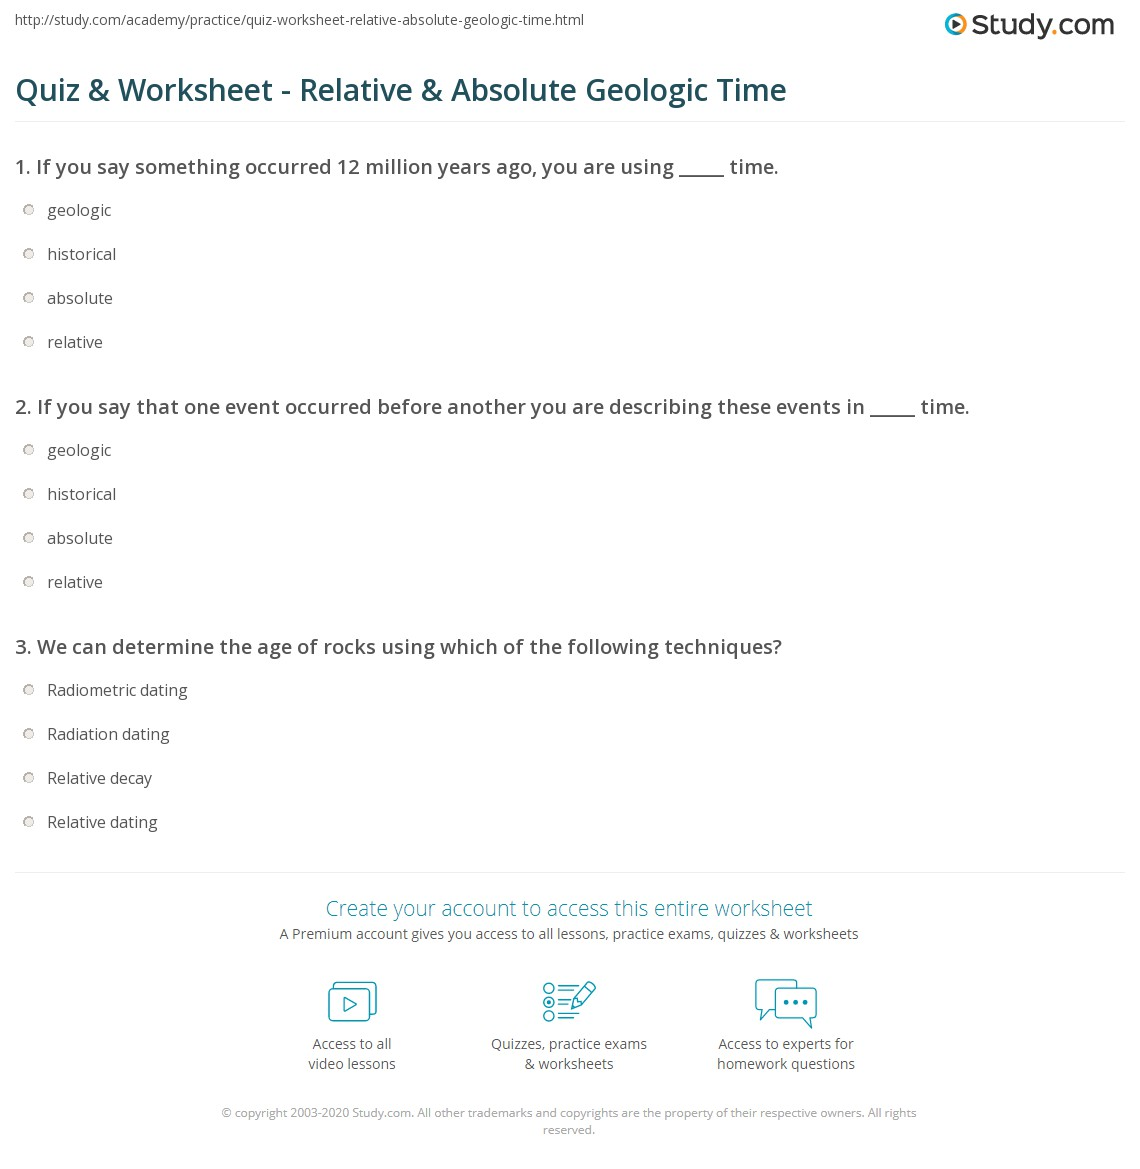 Quiz Worksheet Relative Absolute Geologic Time